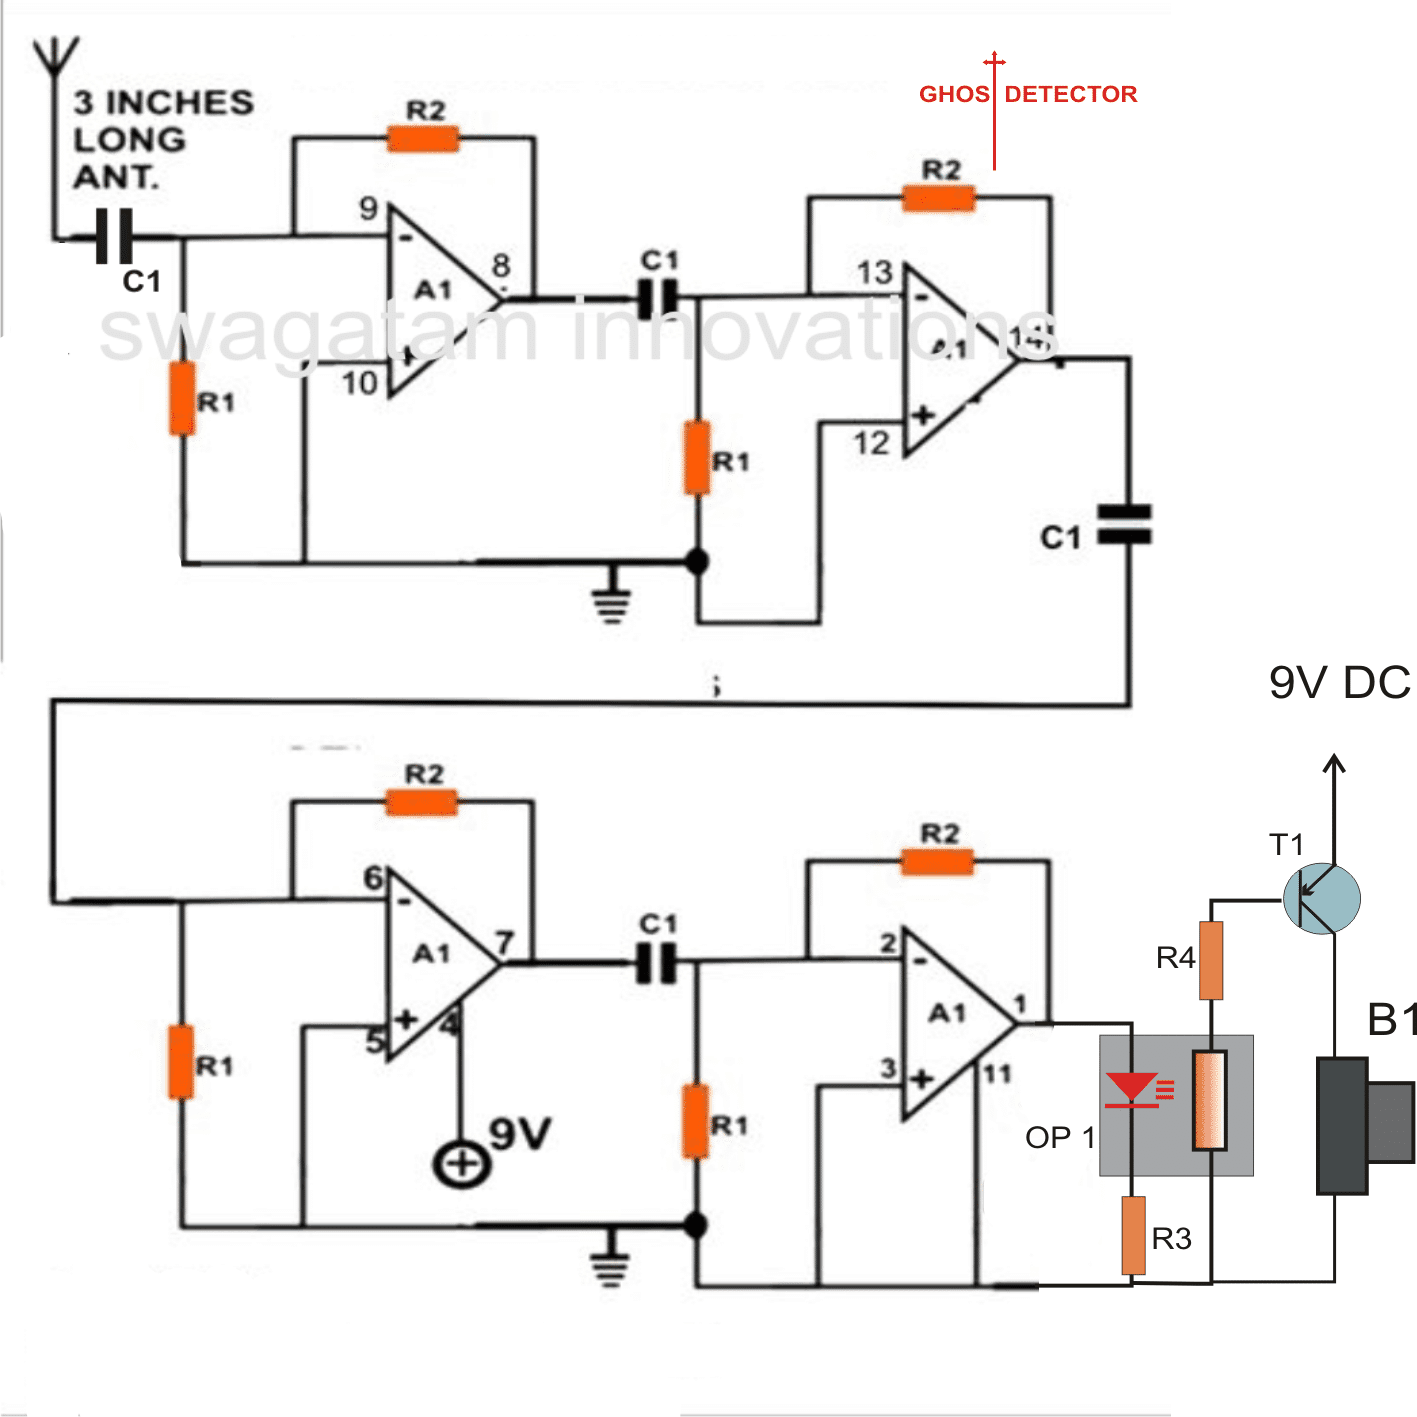 accurate ghost detector circuit